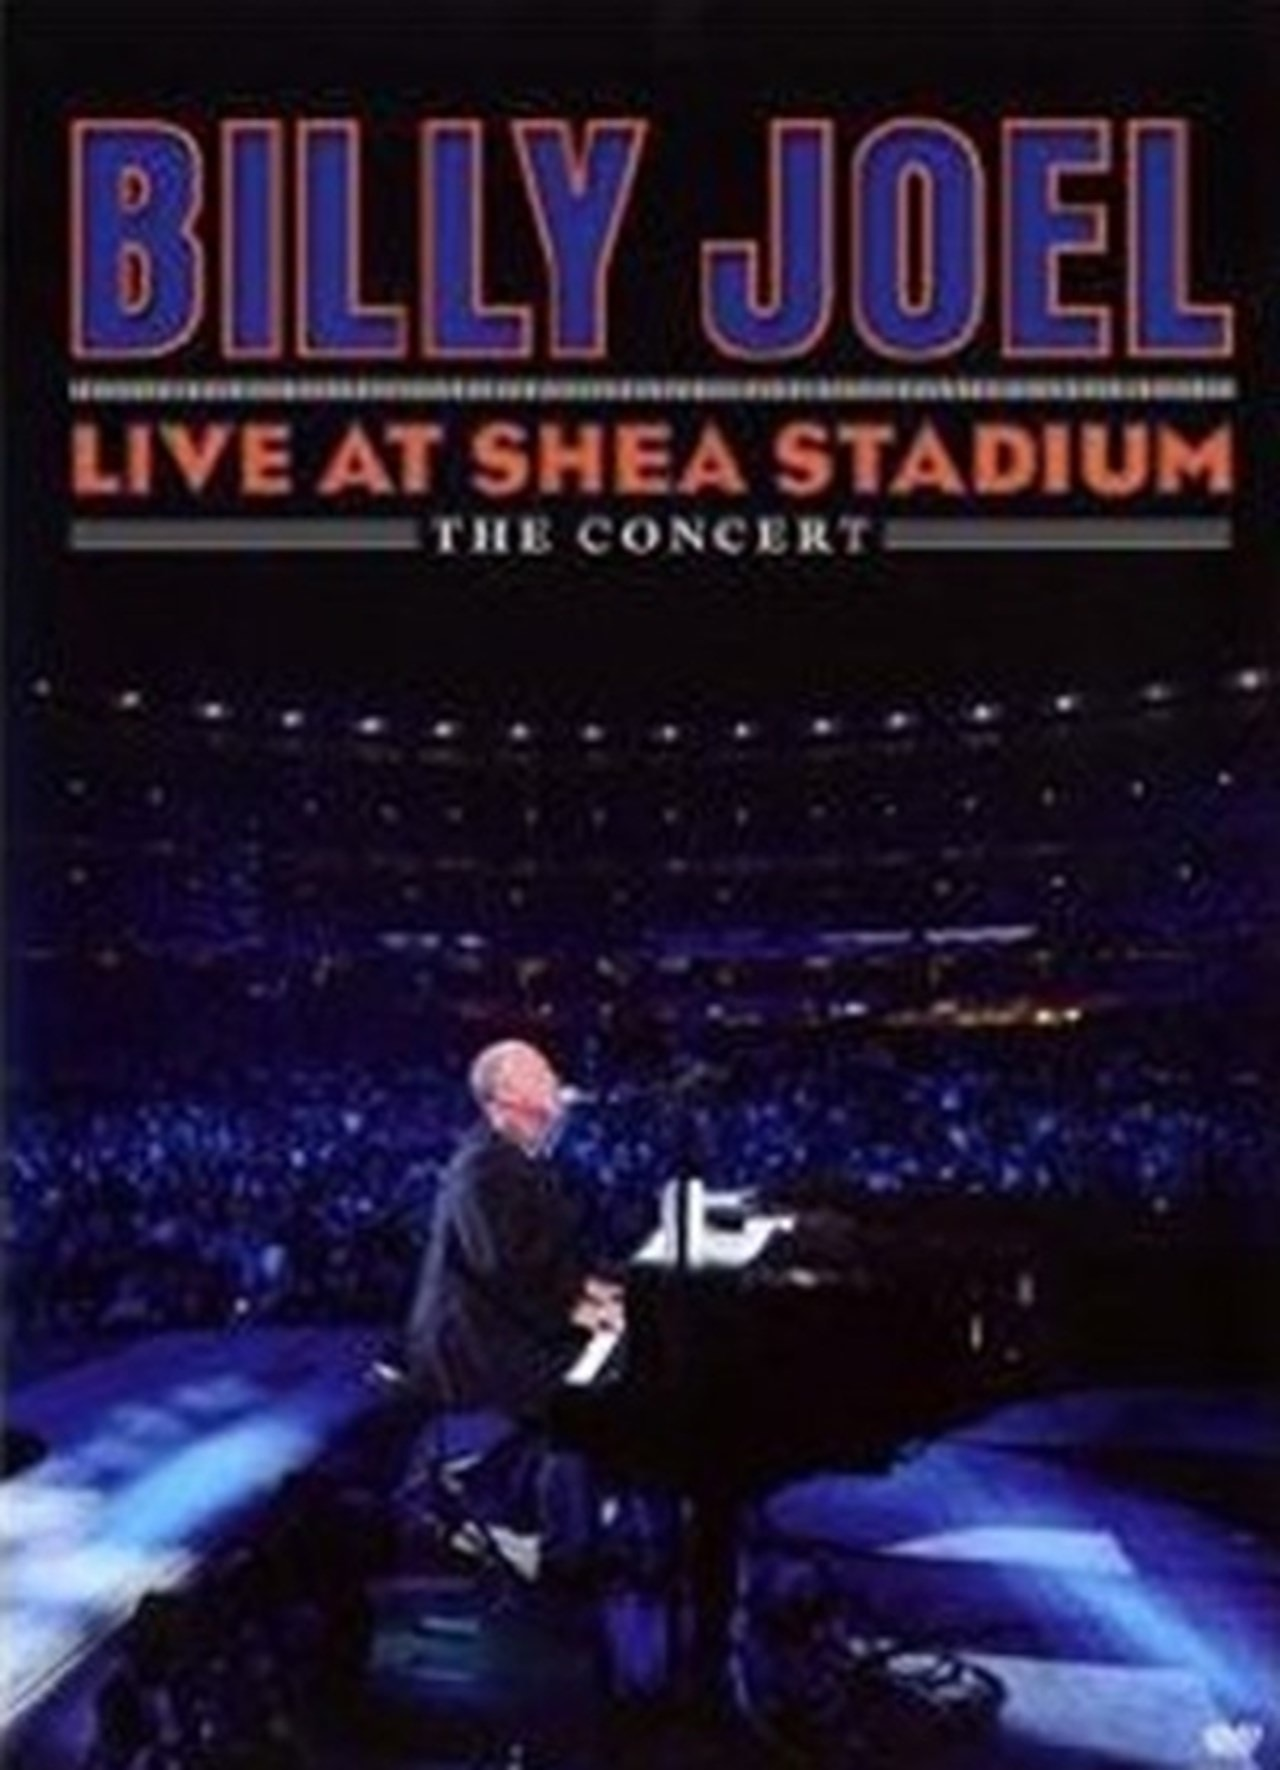 Billy Joel Live At Shea Stadium Dvd Free Shipping Over 20 Hmv Store